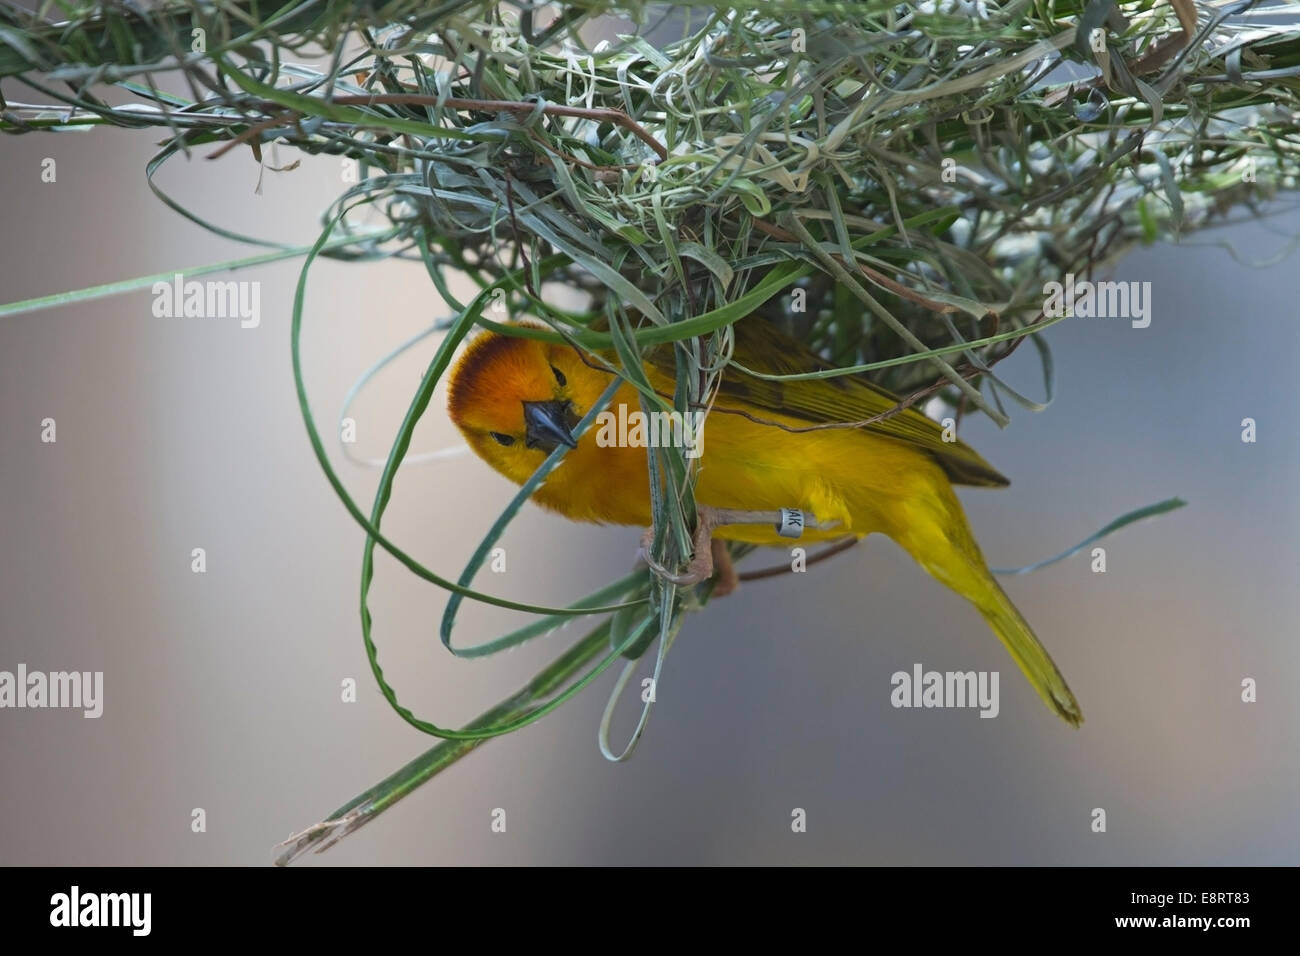 Taveta Golden Weaver (Ploceus castaneiceps) weaving nest - Stock Image